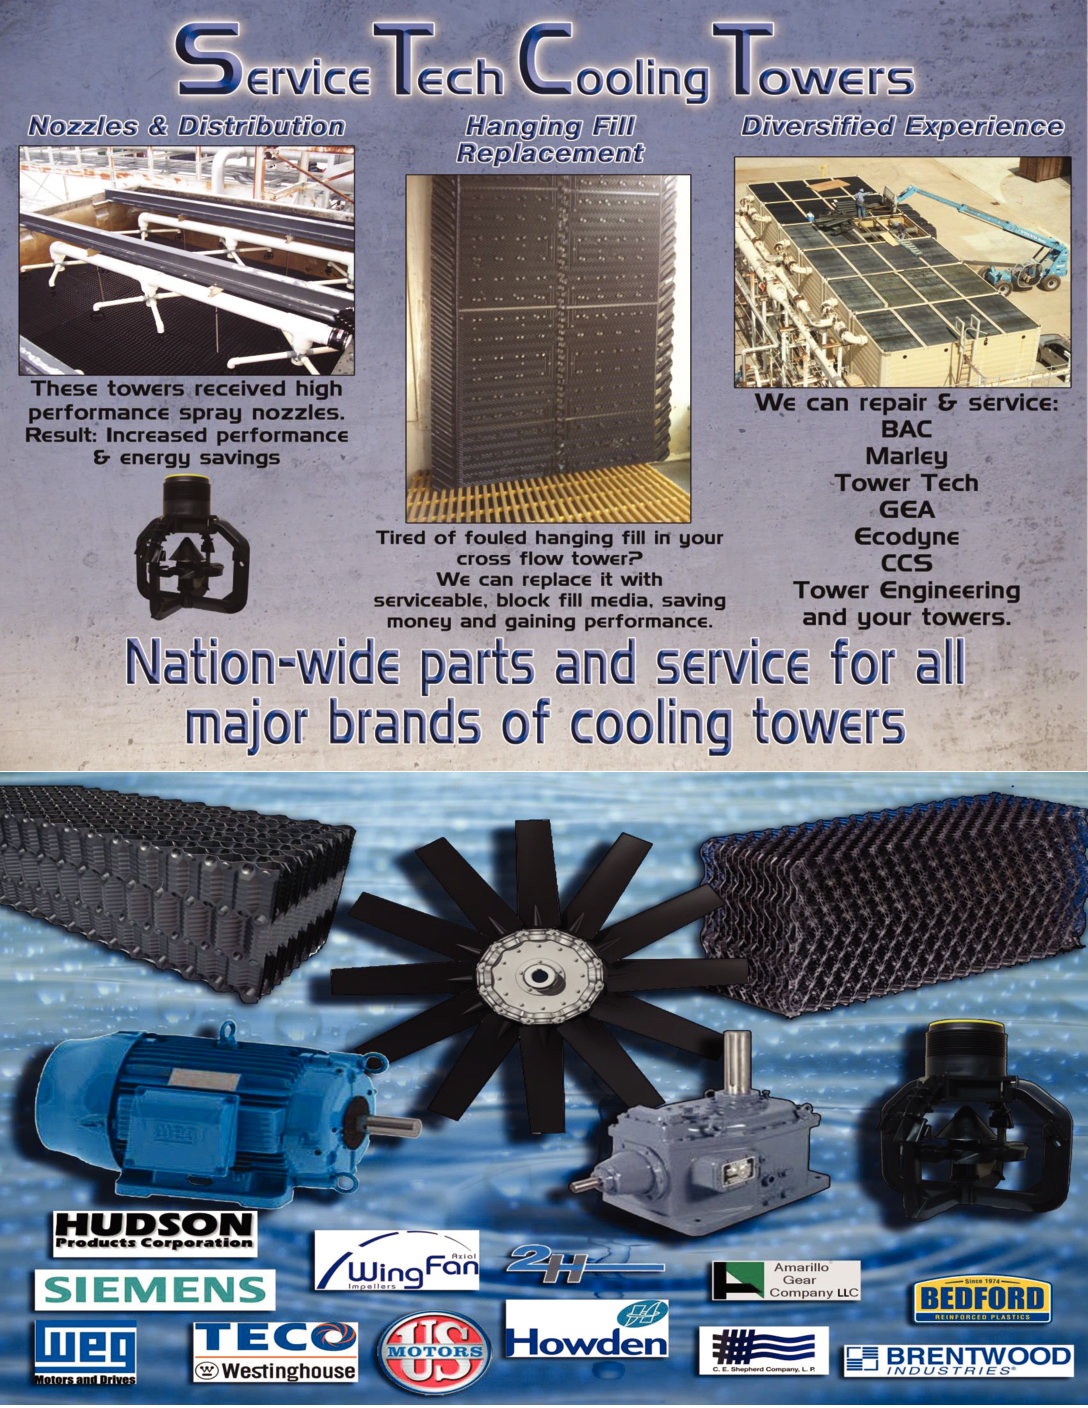 OEM Cooling Tower Service, Maintenance and Parts